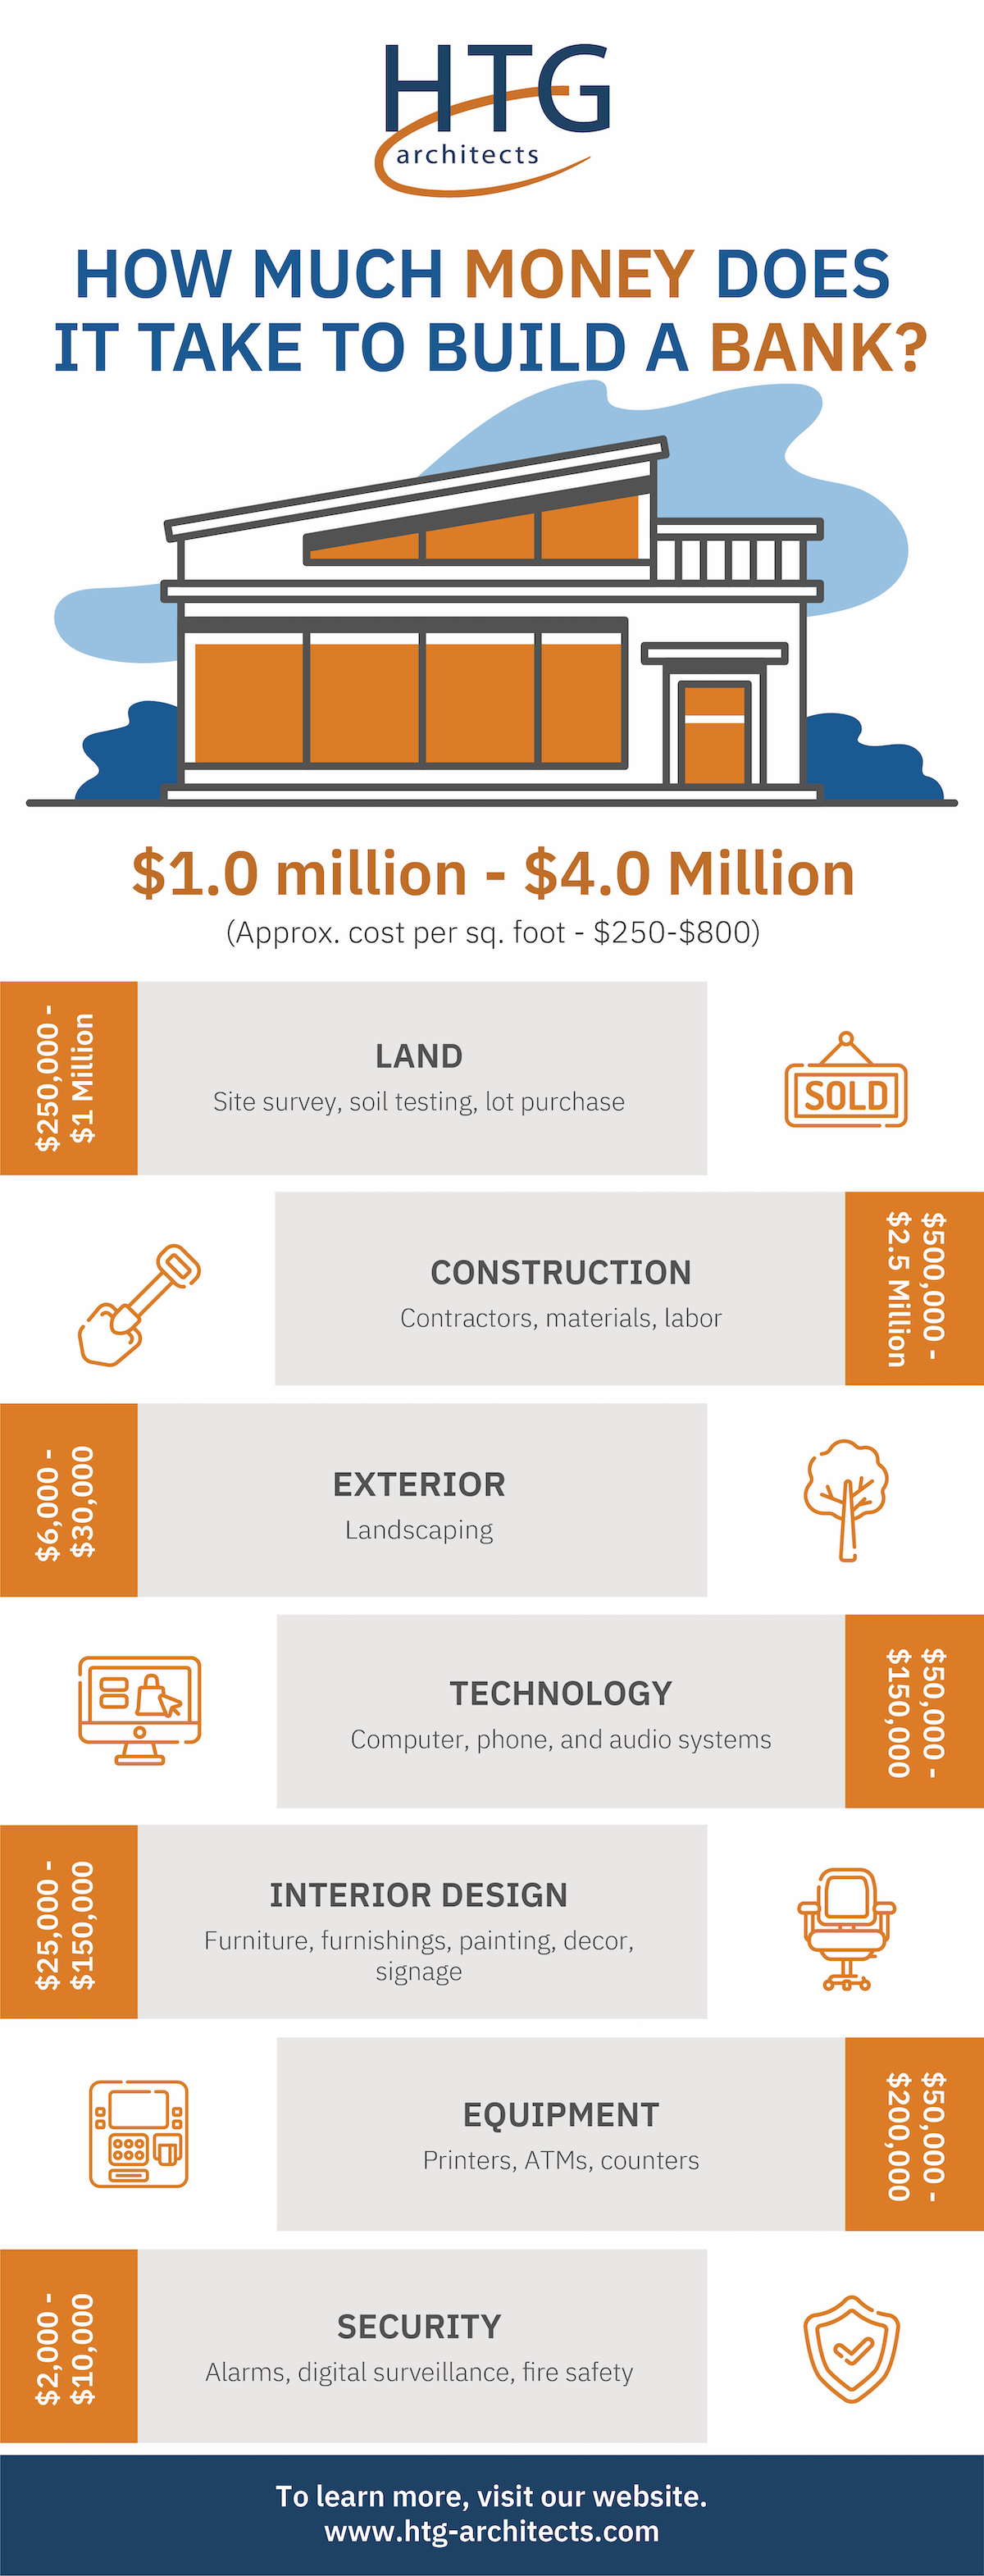 Infographic showing how much money it takes to build a bank.